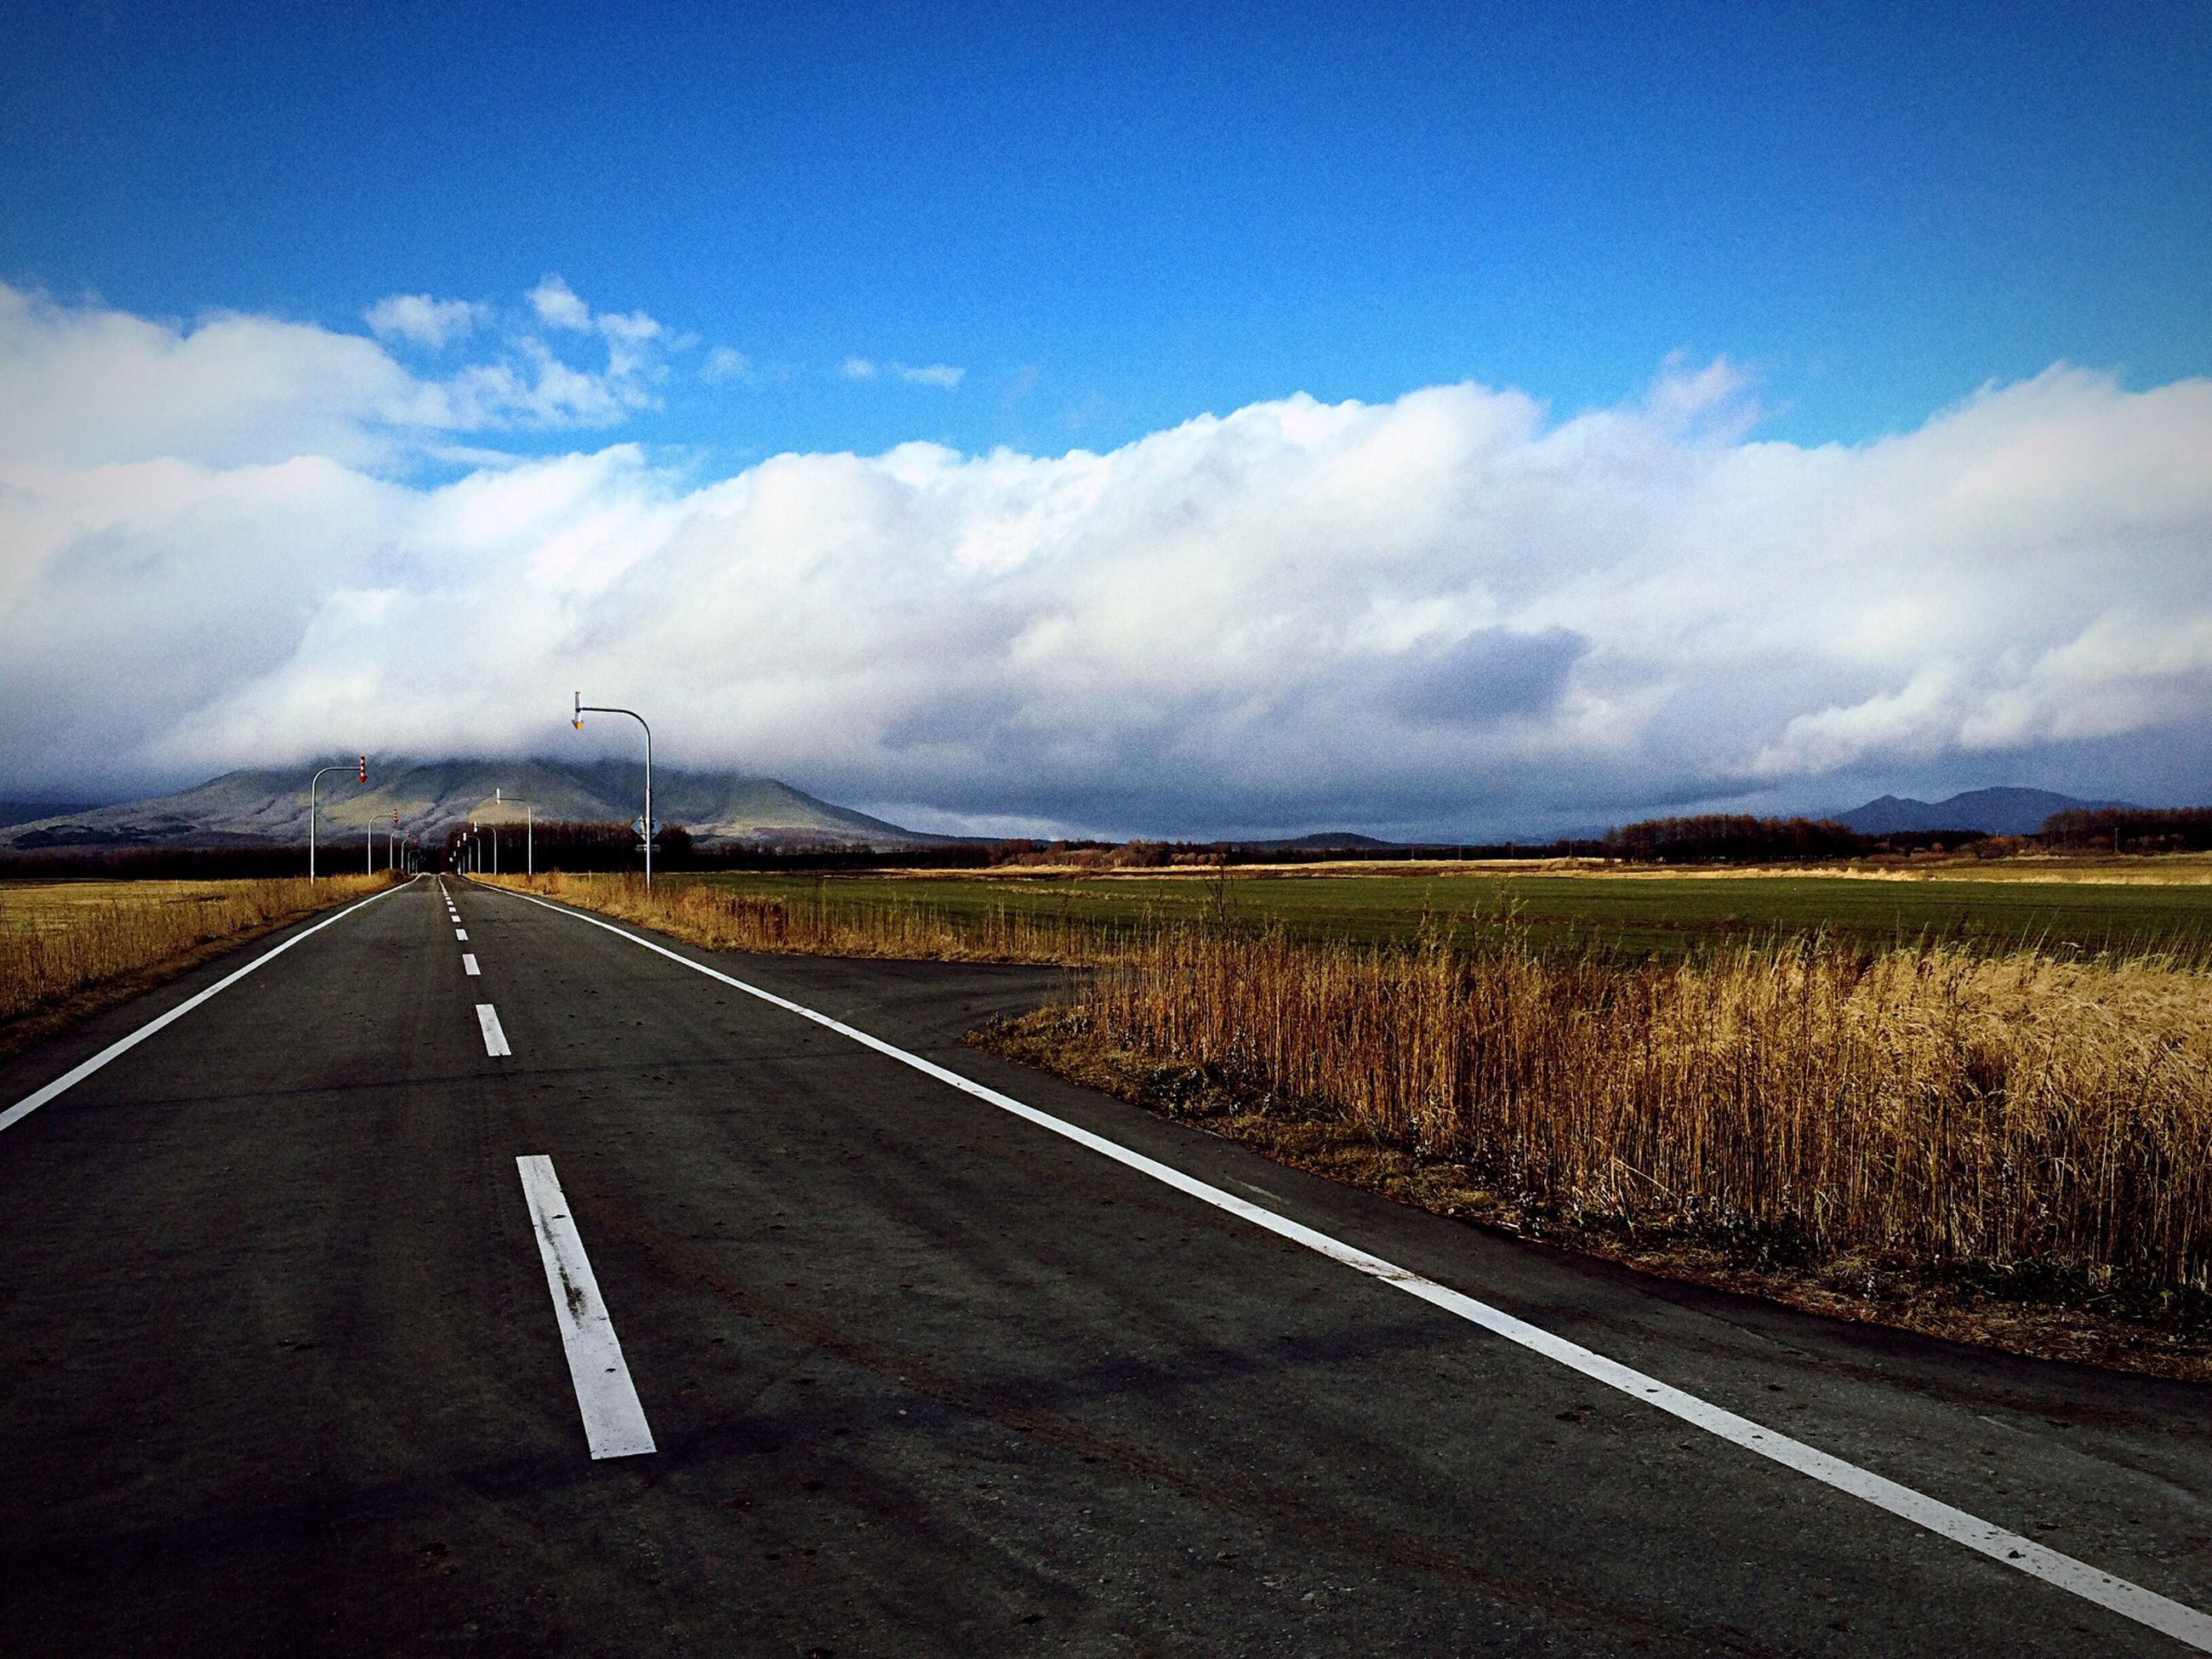 the way forward, transportation, road, sky, diminishing perspective, road marking, vanishing point, country road, landscape, cloud - sky, tranquil scene, empty road, empty, tranquility, cloud, asphalt, cloudy, scenics, nature, field